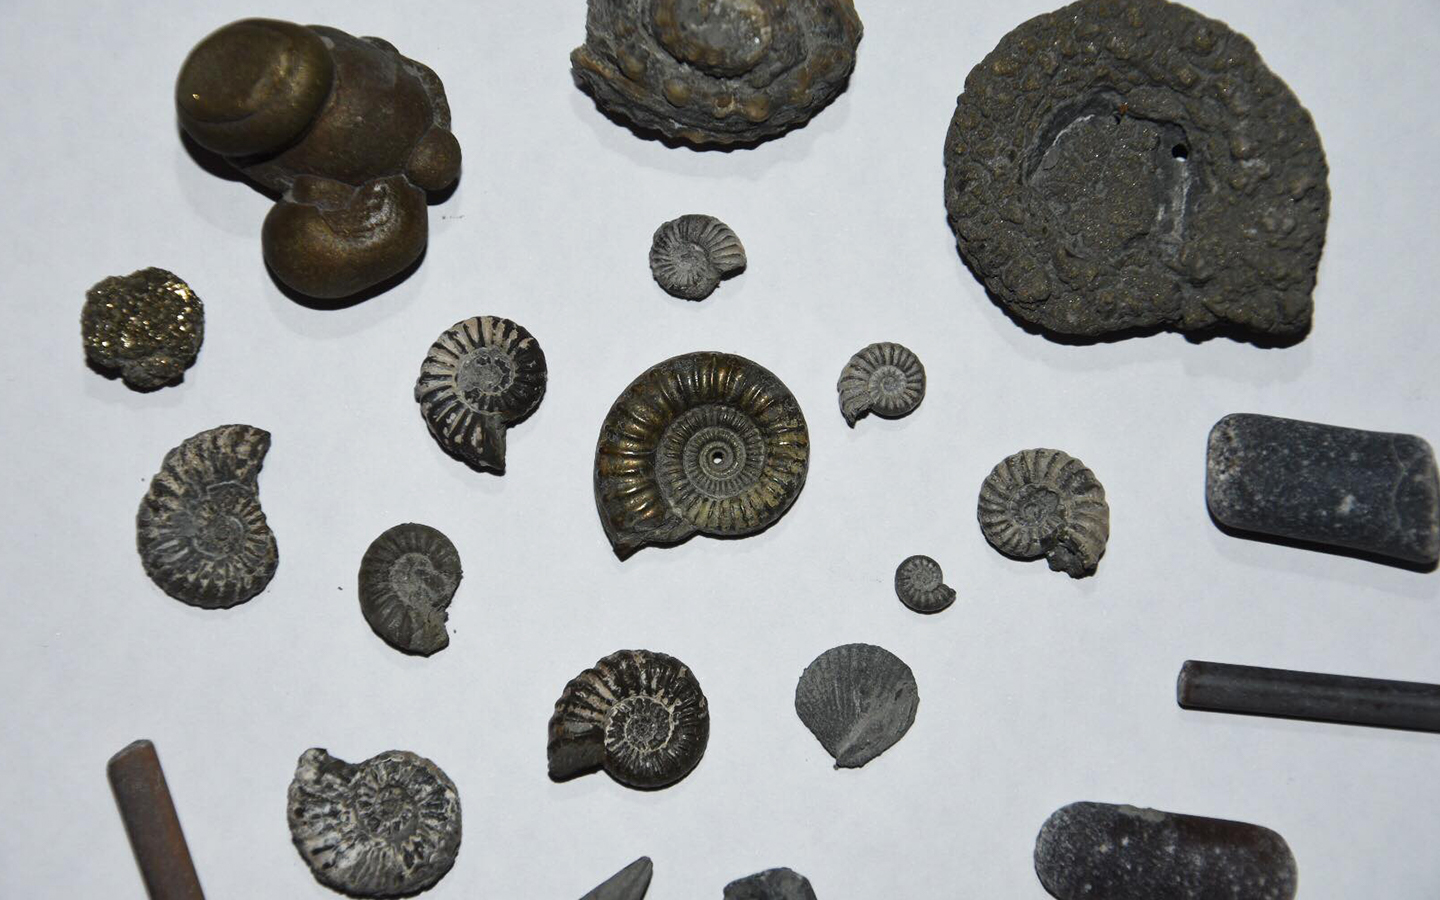 ammonites and belemnites found fossil hunting in charmouth